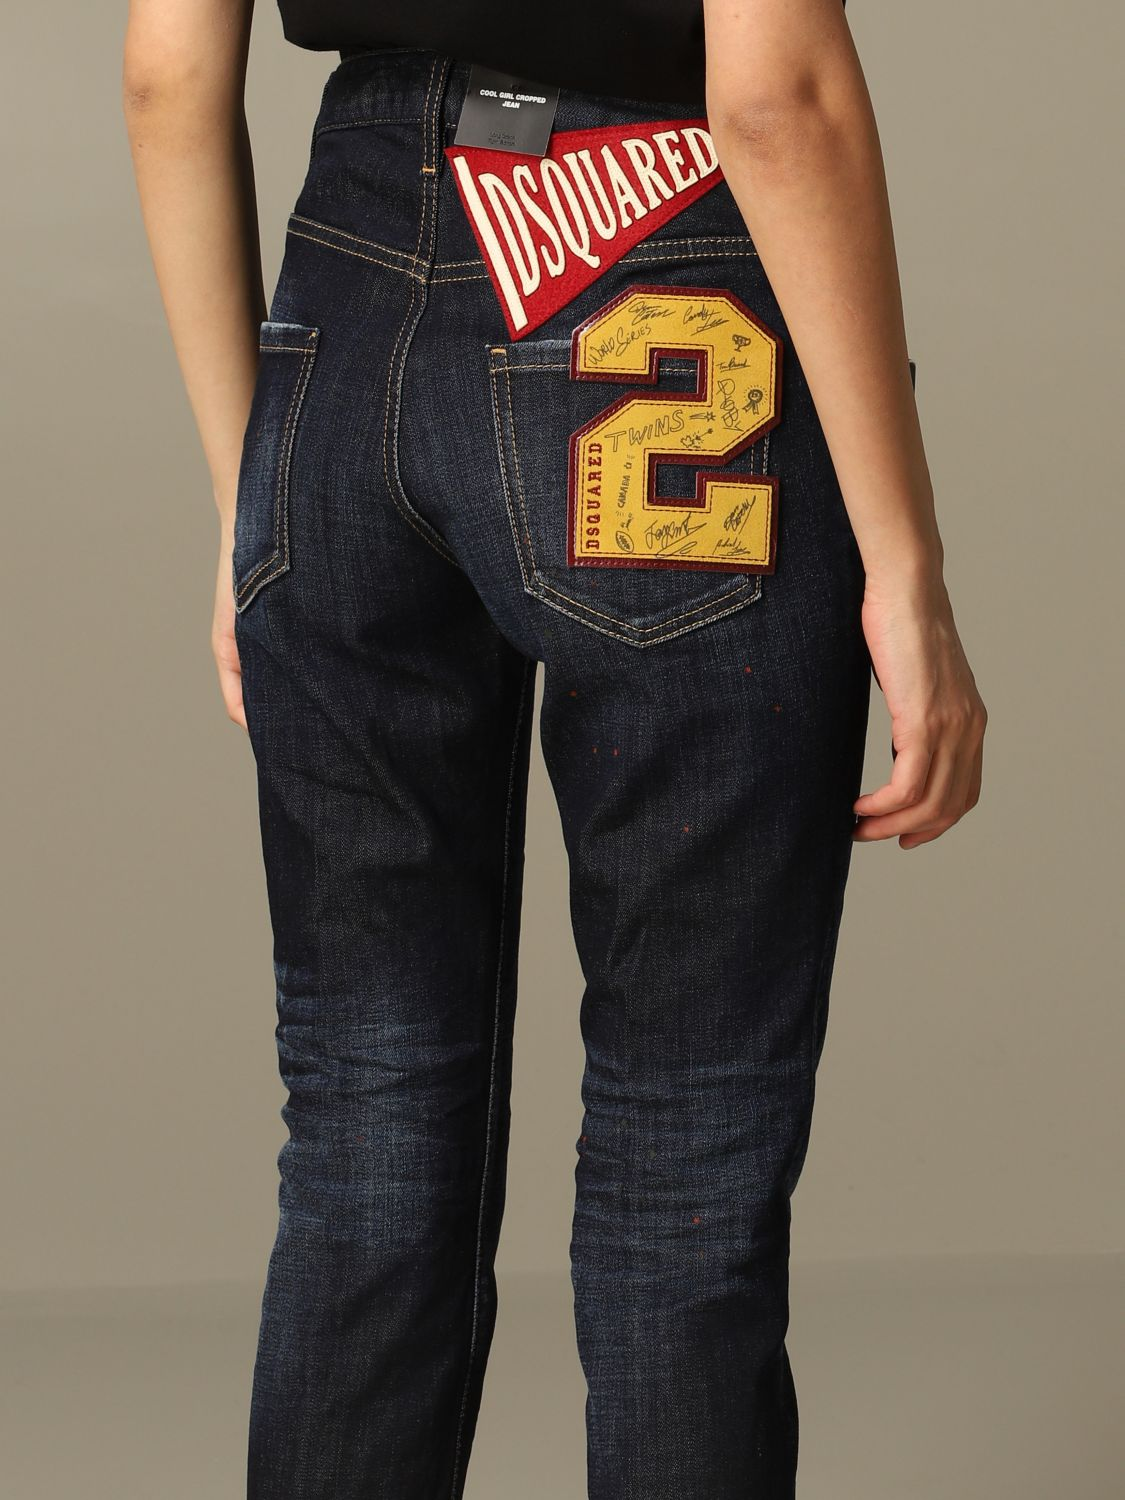 Jeans Mujer Dsquared2 Jeans Dsquared2 Mujer Denim Jeans Dsquared2 S75lb0351 S30664 Giglio Es